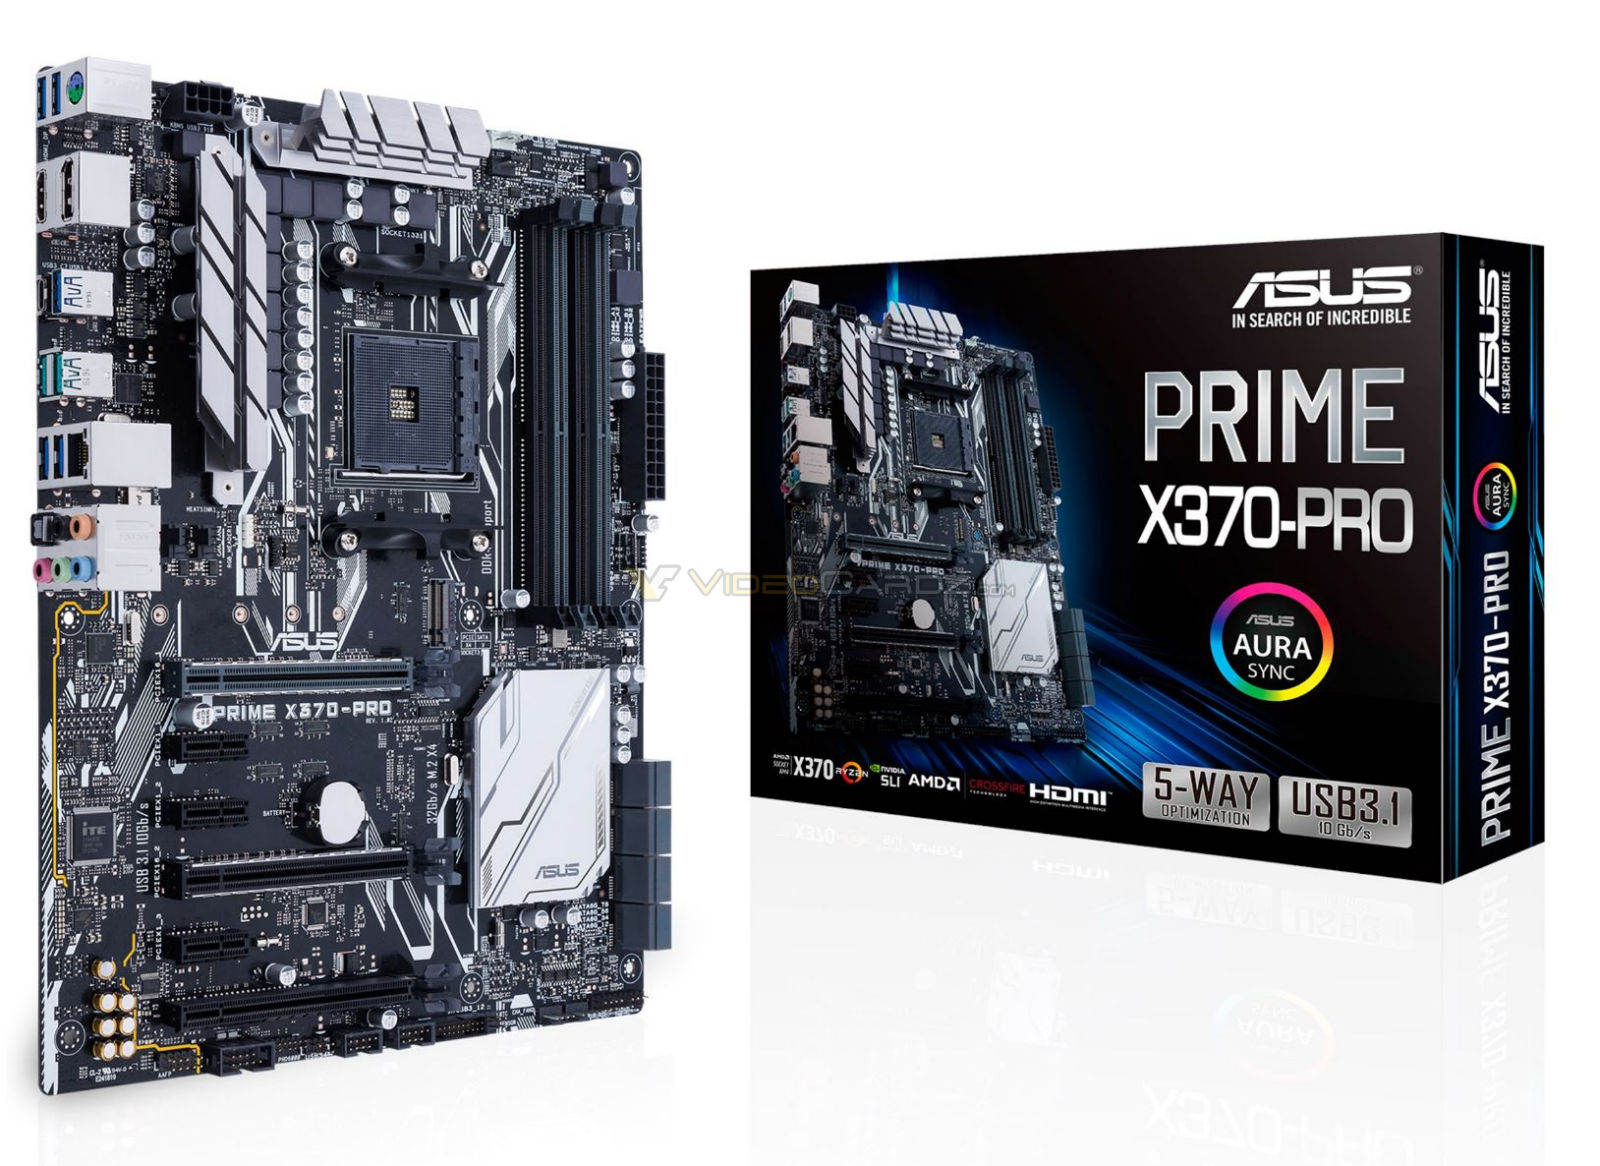 First images of X370 motherboard packaging appear